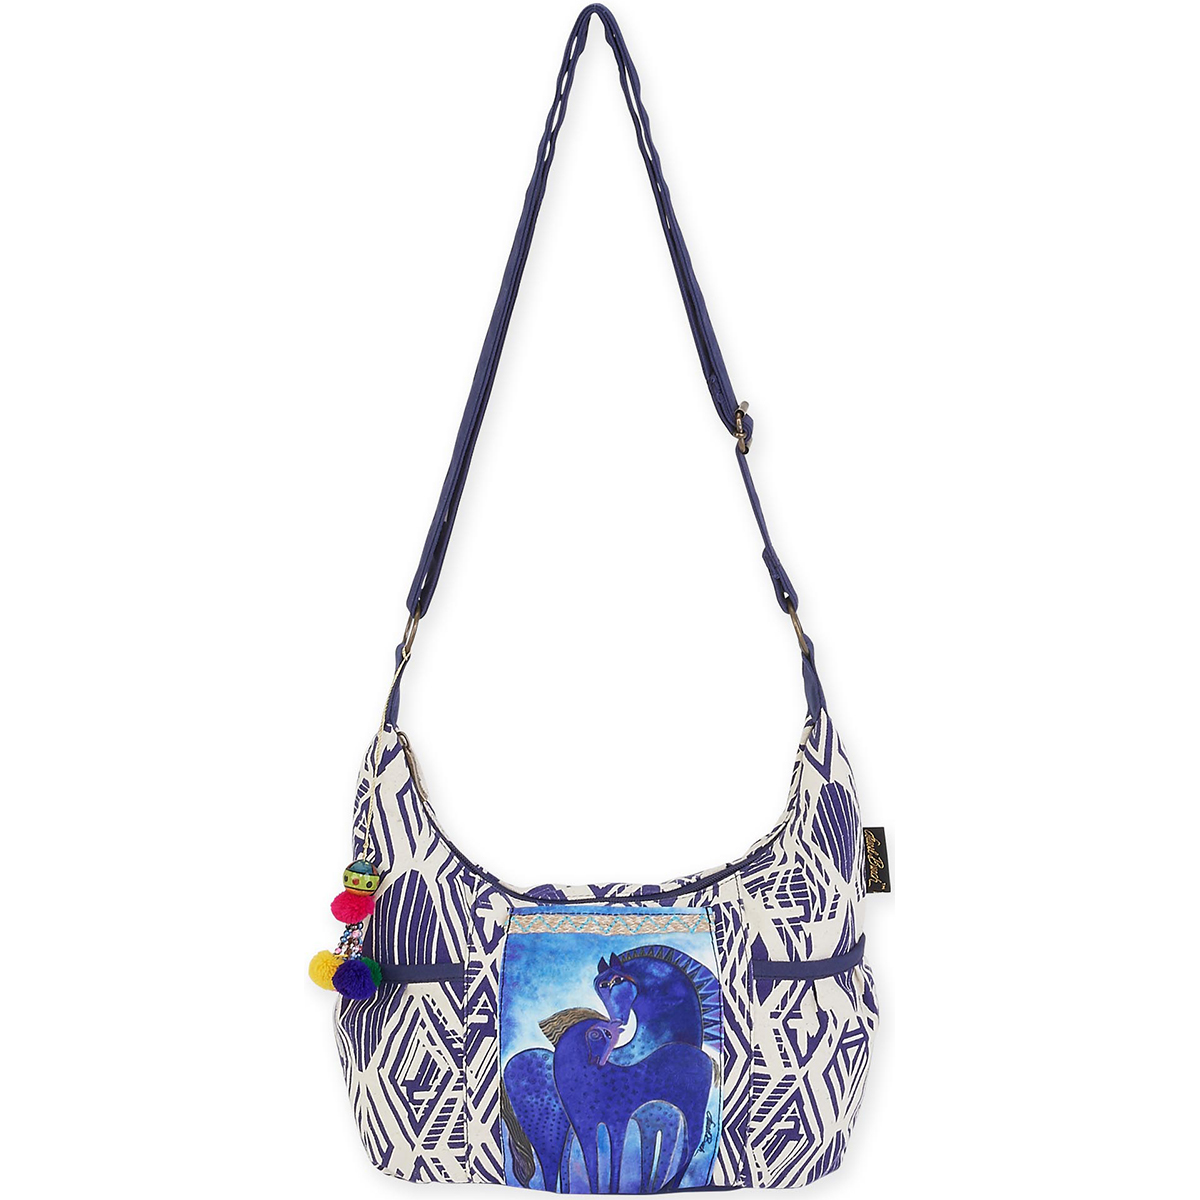 Medium Scoop Crossbody 11.5 Inch X 5.75 Inch X 8 Inch-Indigo Mares